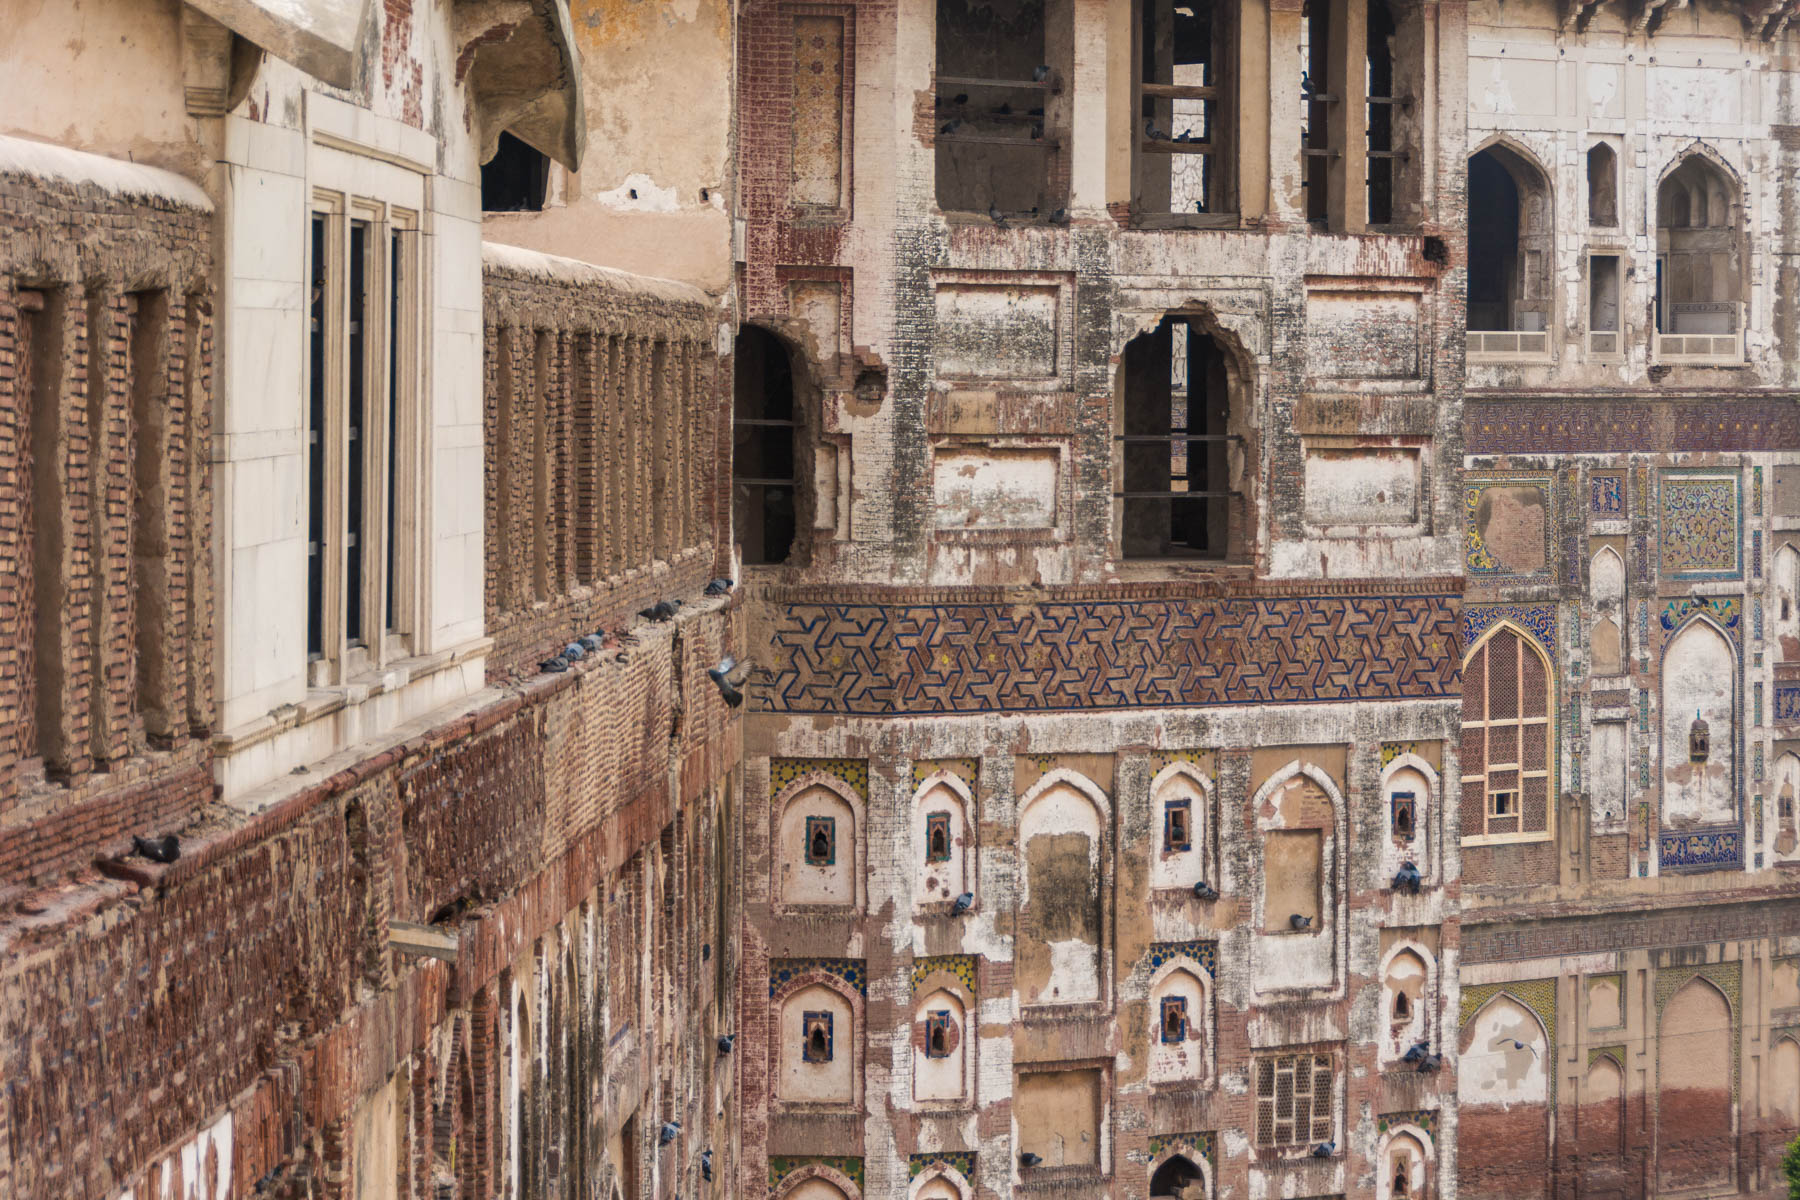 Why dual pricing is unfair - Lahore Fort in Pakistan, another offender - Lost With Purpose